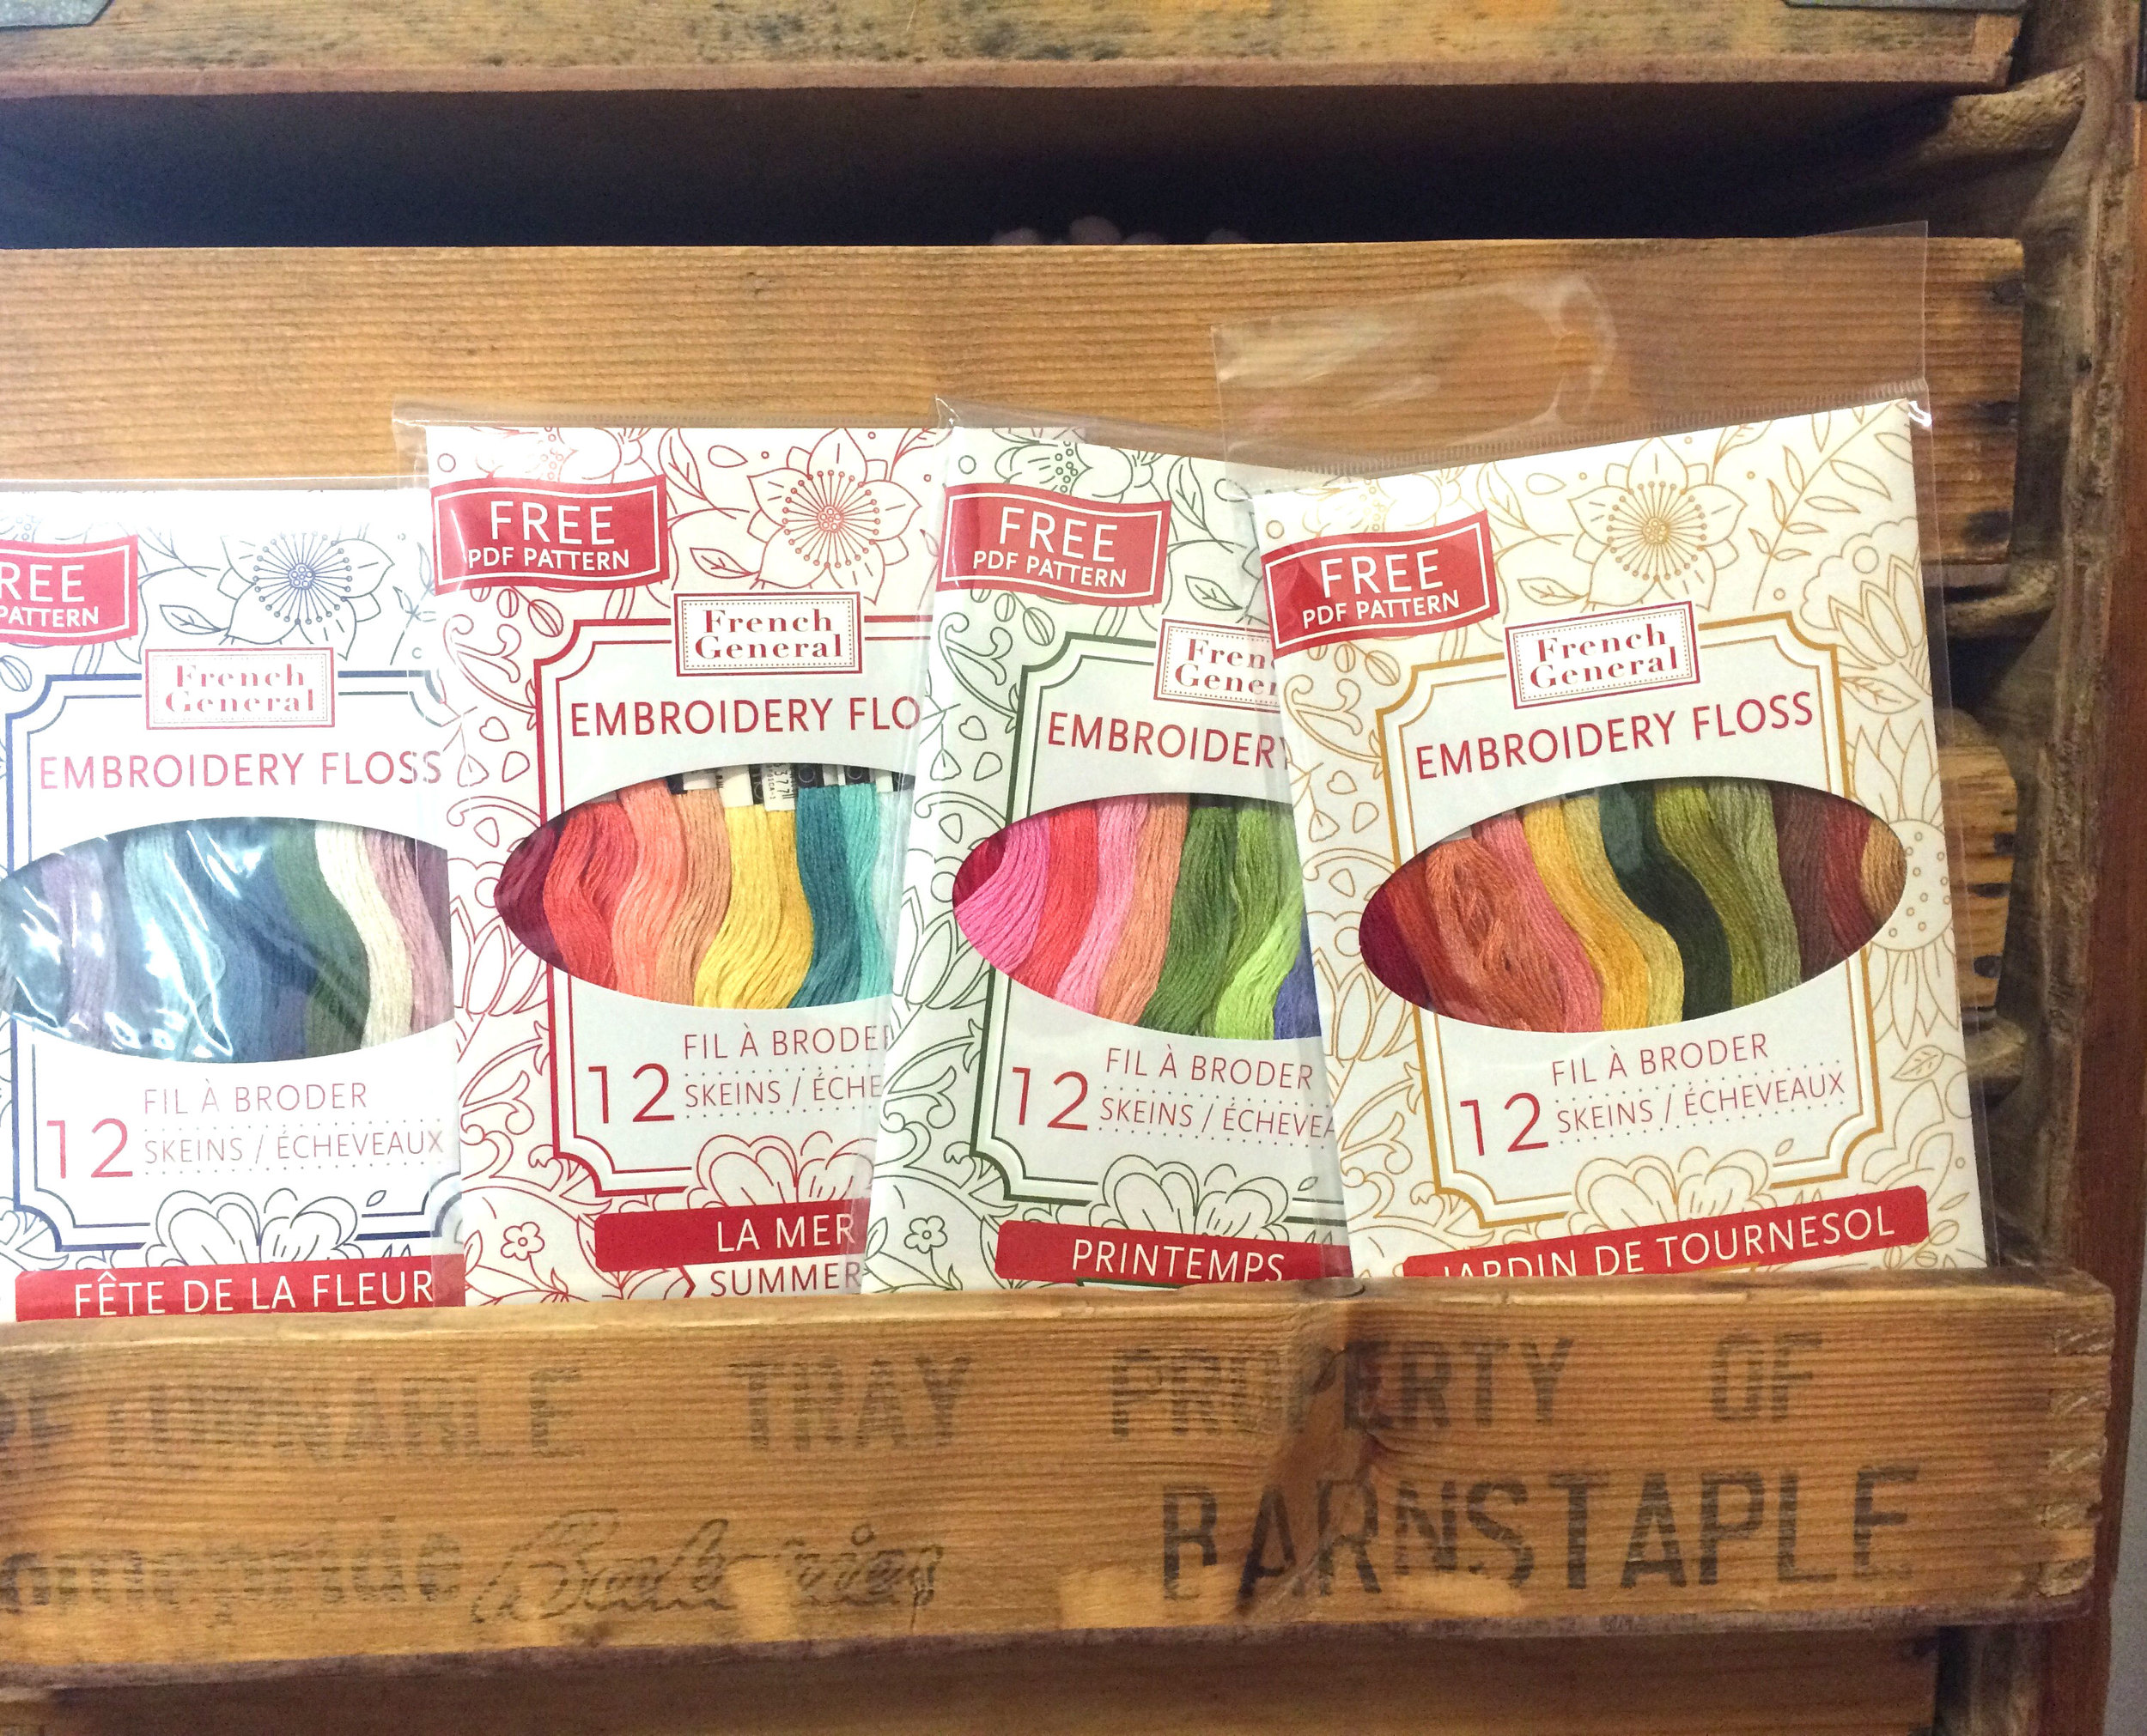 New French General embroidery floss.